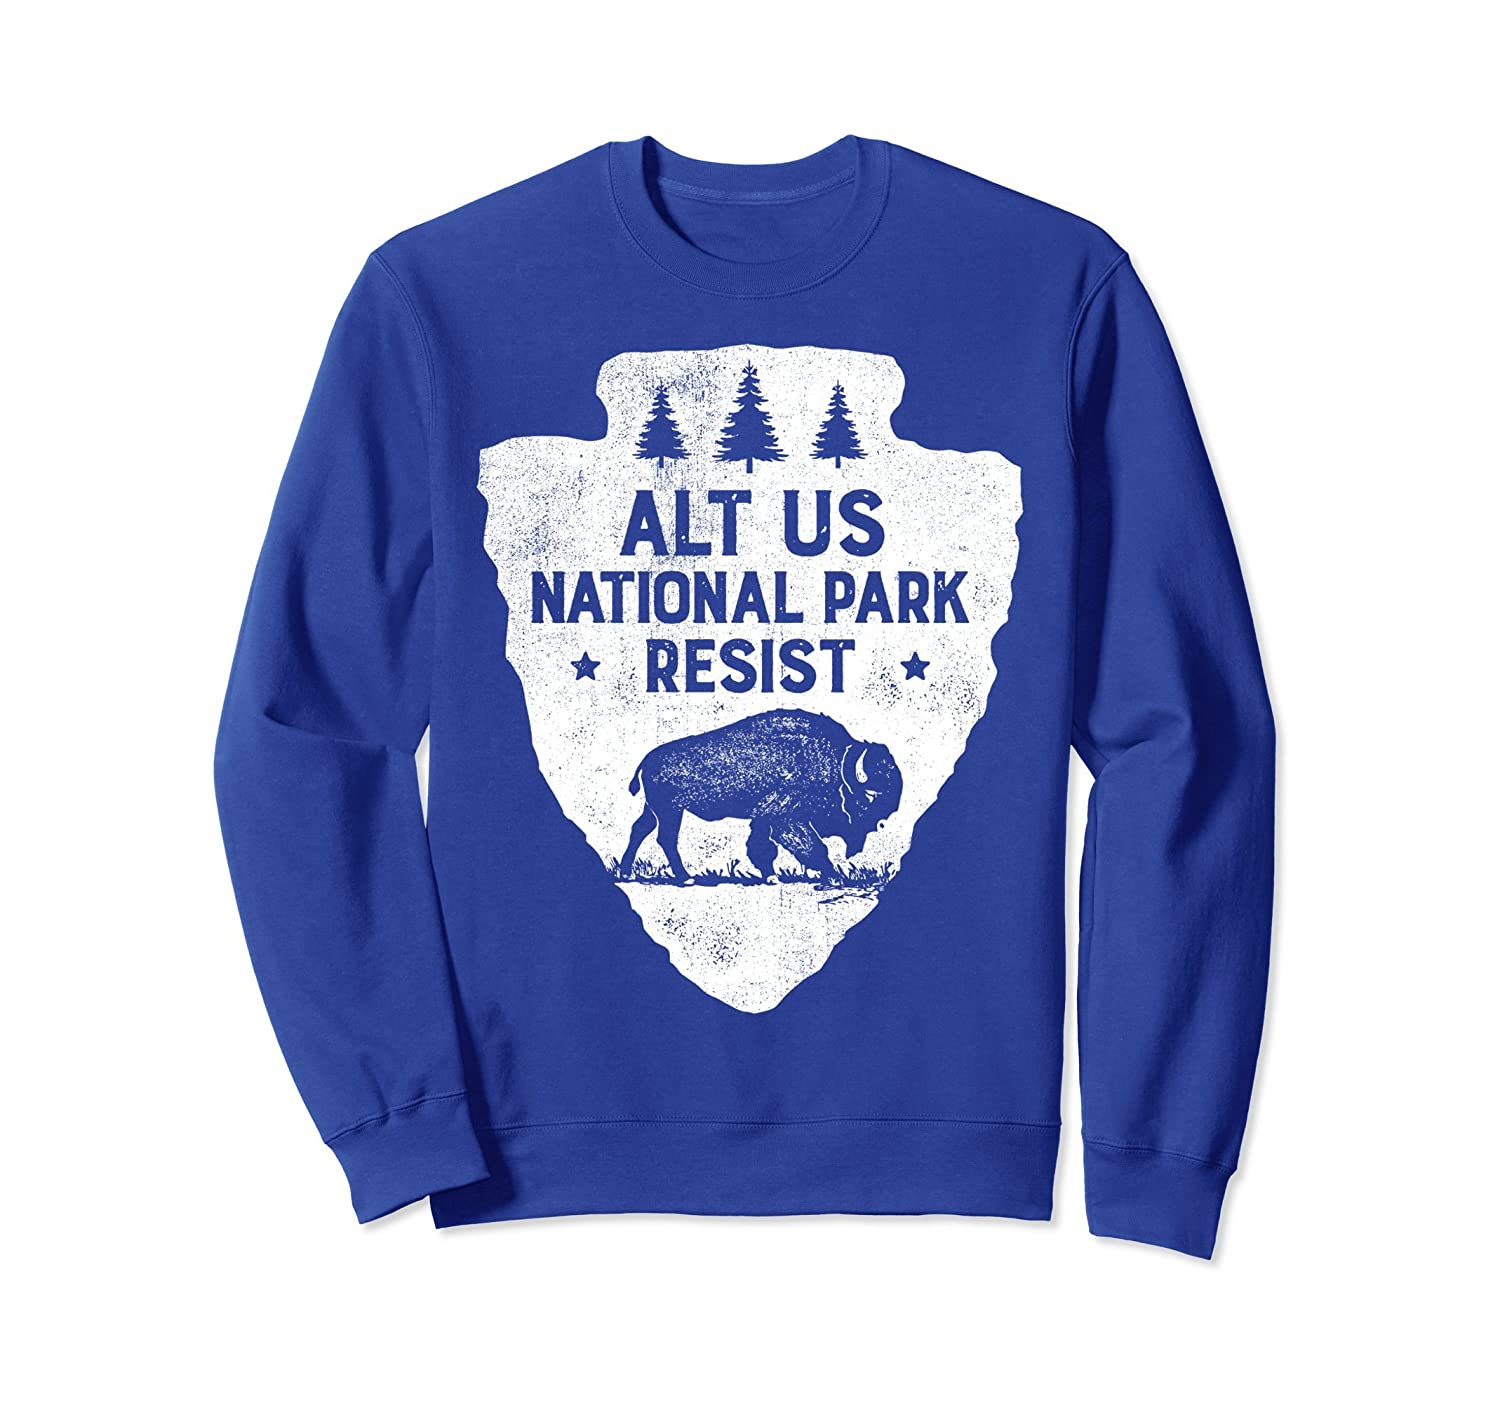 ALT US National Park Resist Service Sweatshirt Bison Vintage-ah my shirt one gift